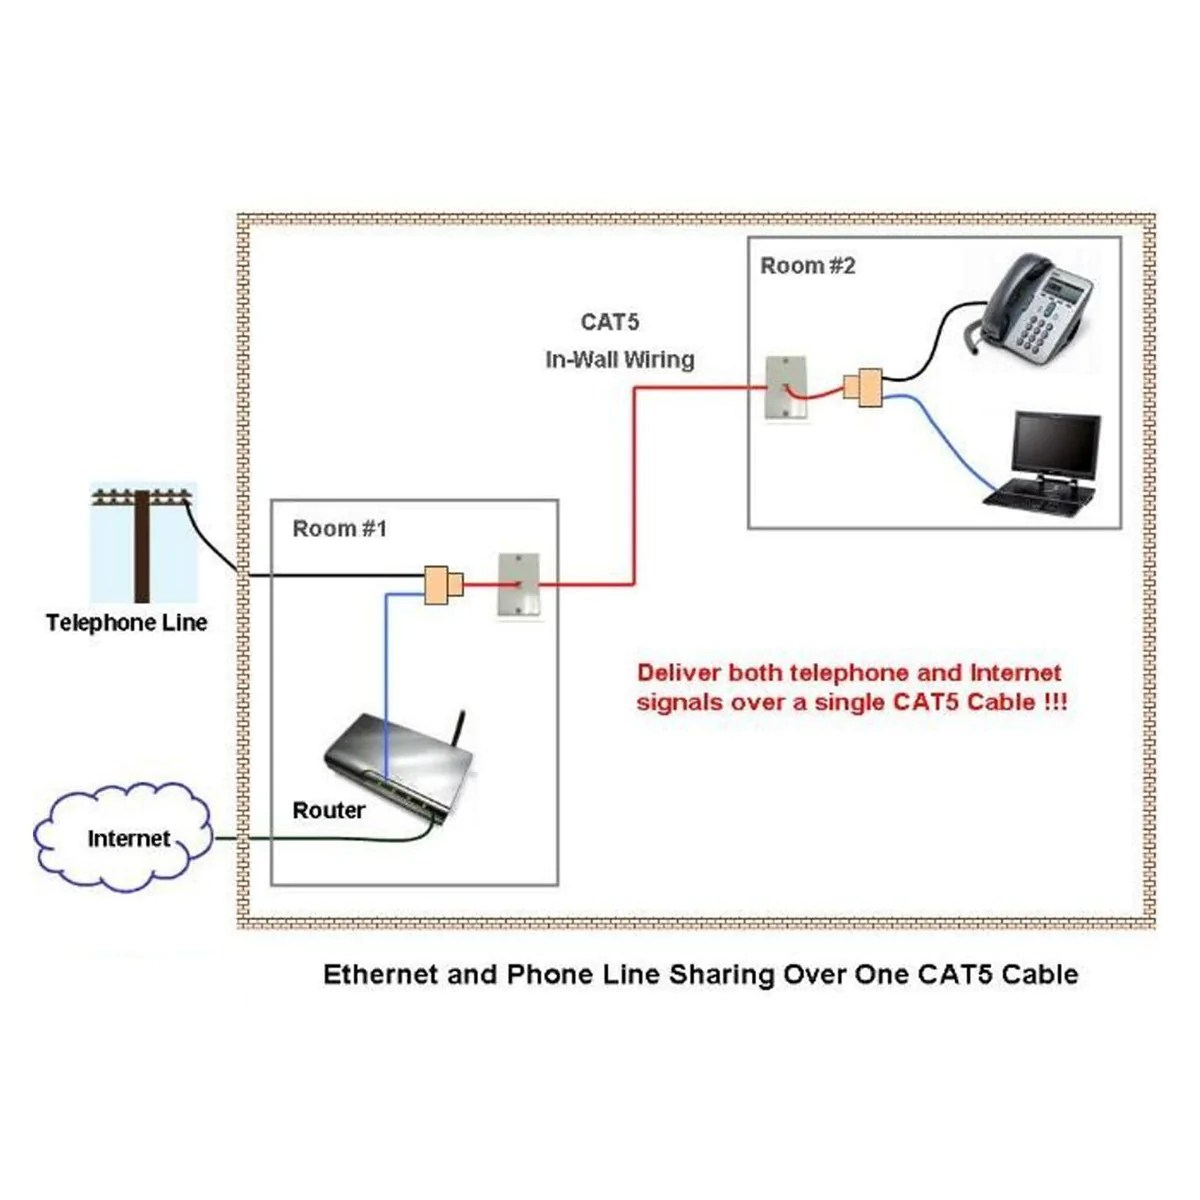 hight resolution of  cat 5 phone wire diagram rj45 rj11 splitter cable sharing kit for ethernet and phone linesrj45 rj11 splitter cable sharing kit